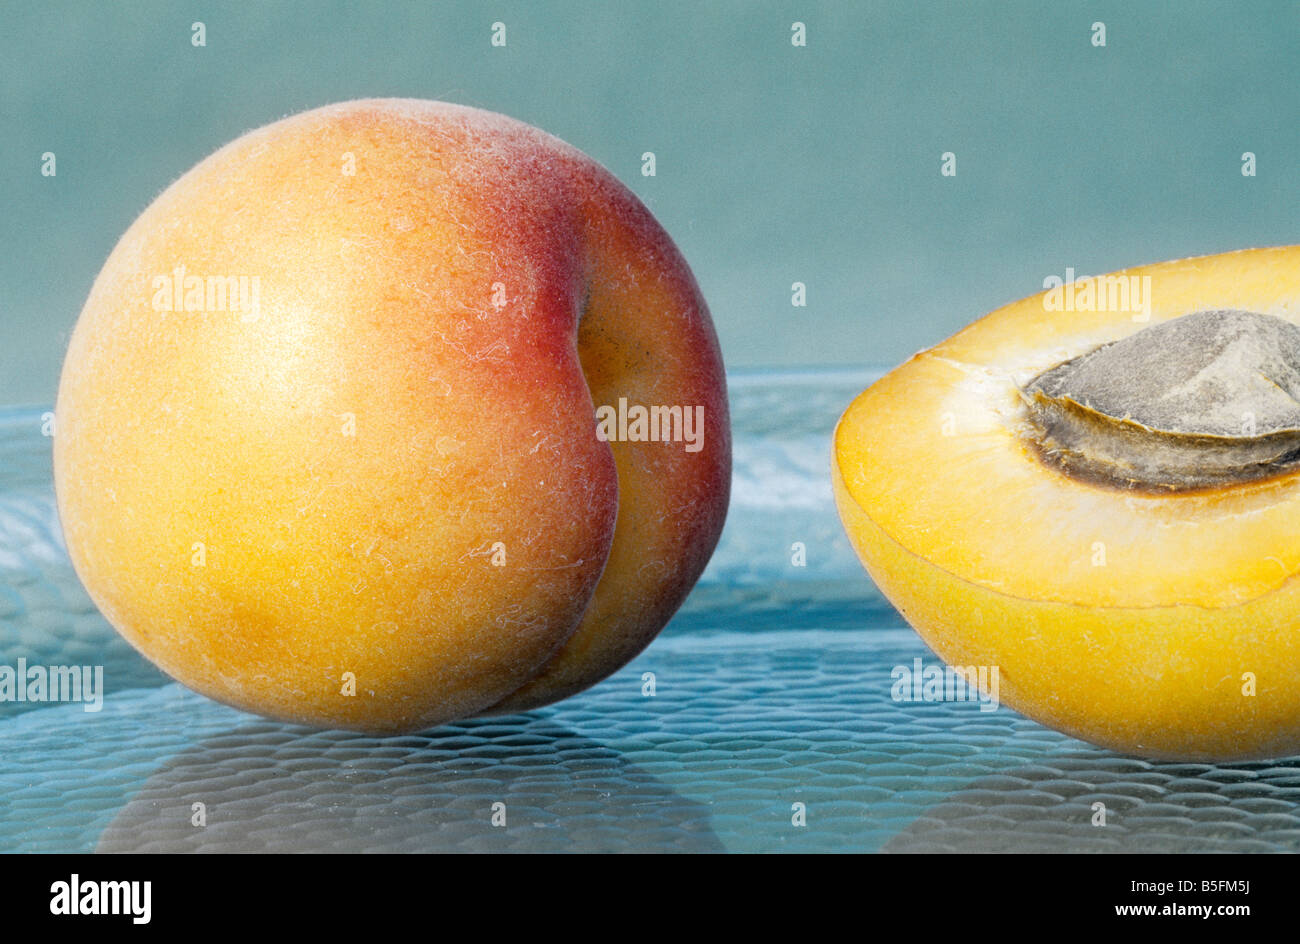 Apricots on glass plate - Stock Image